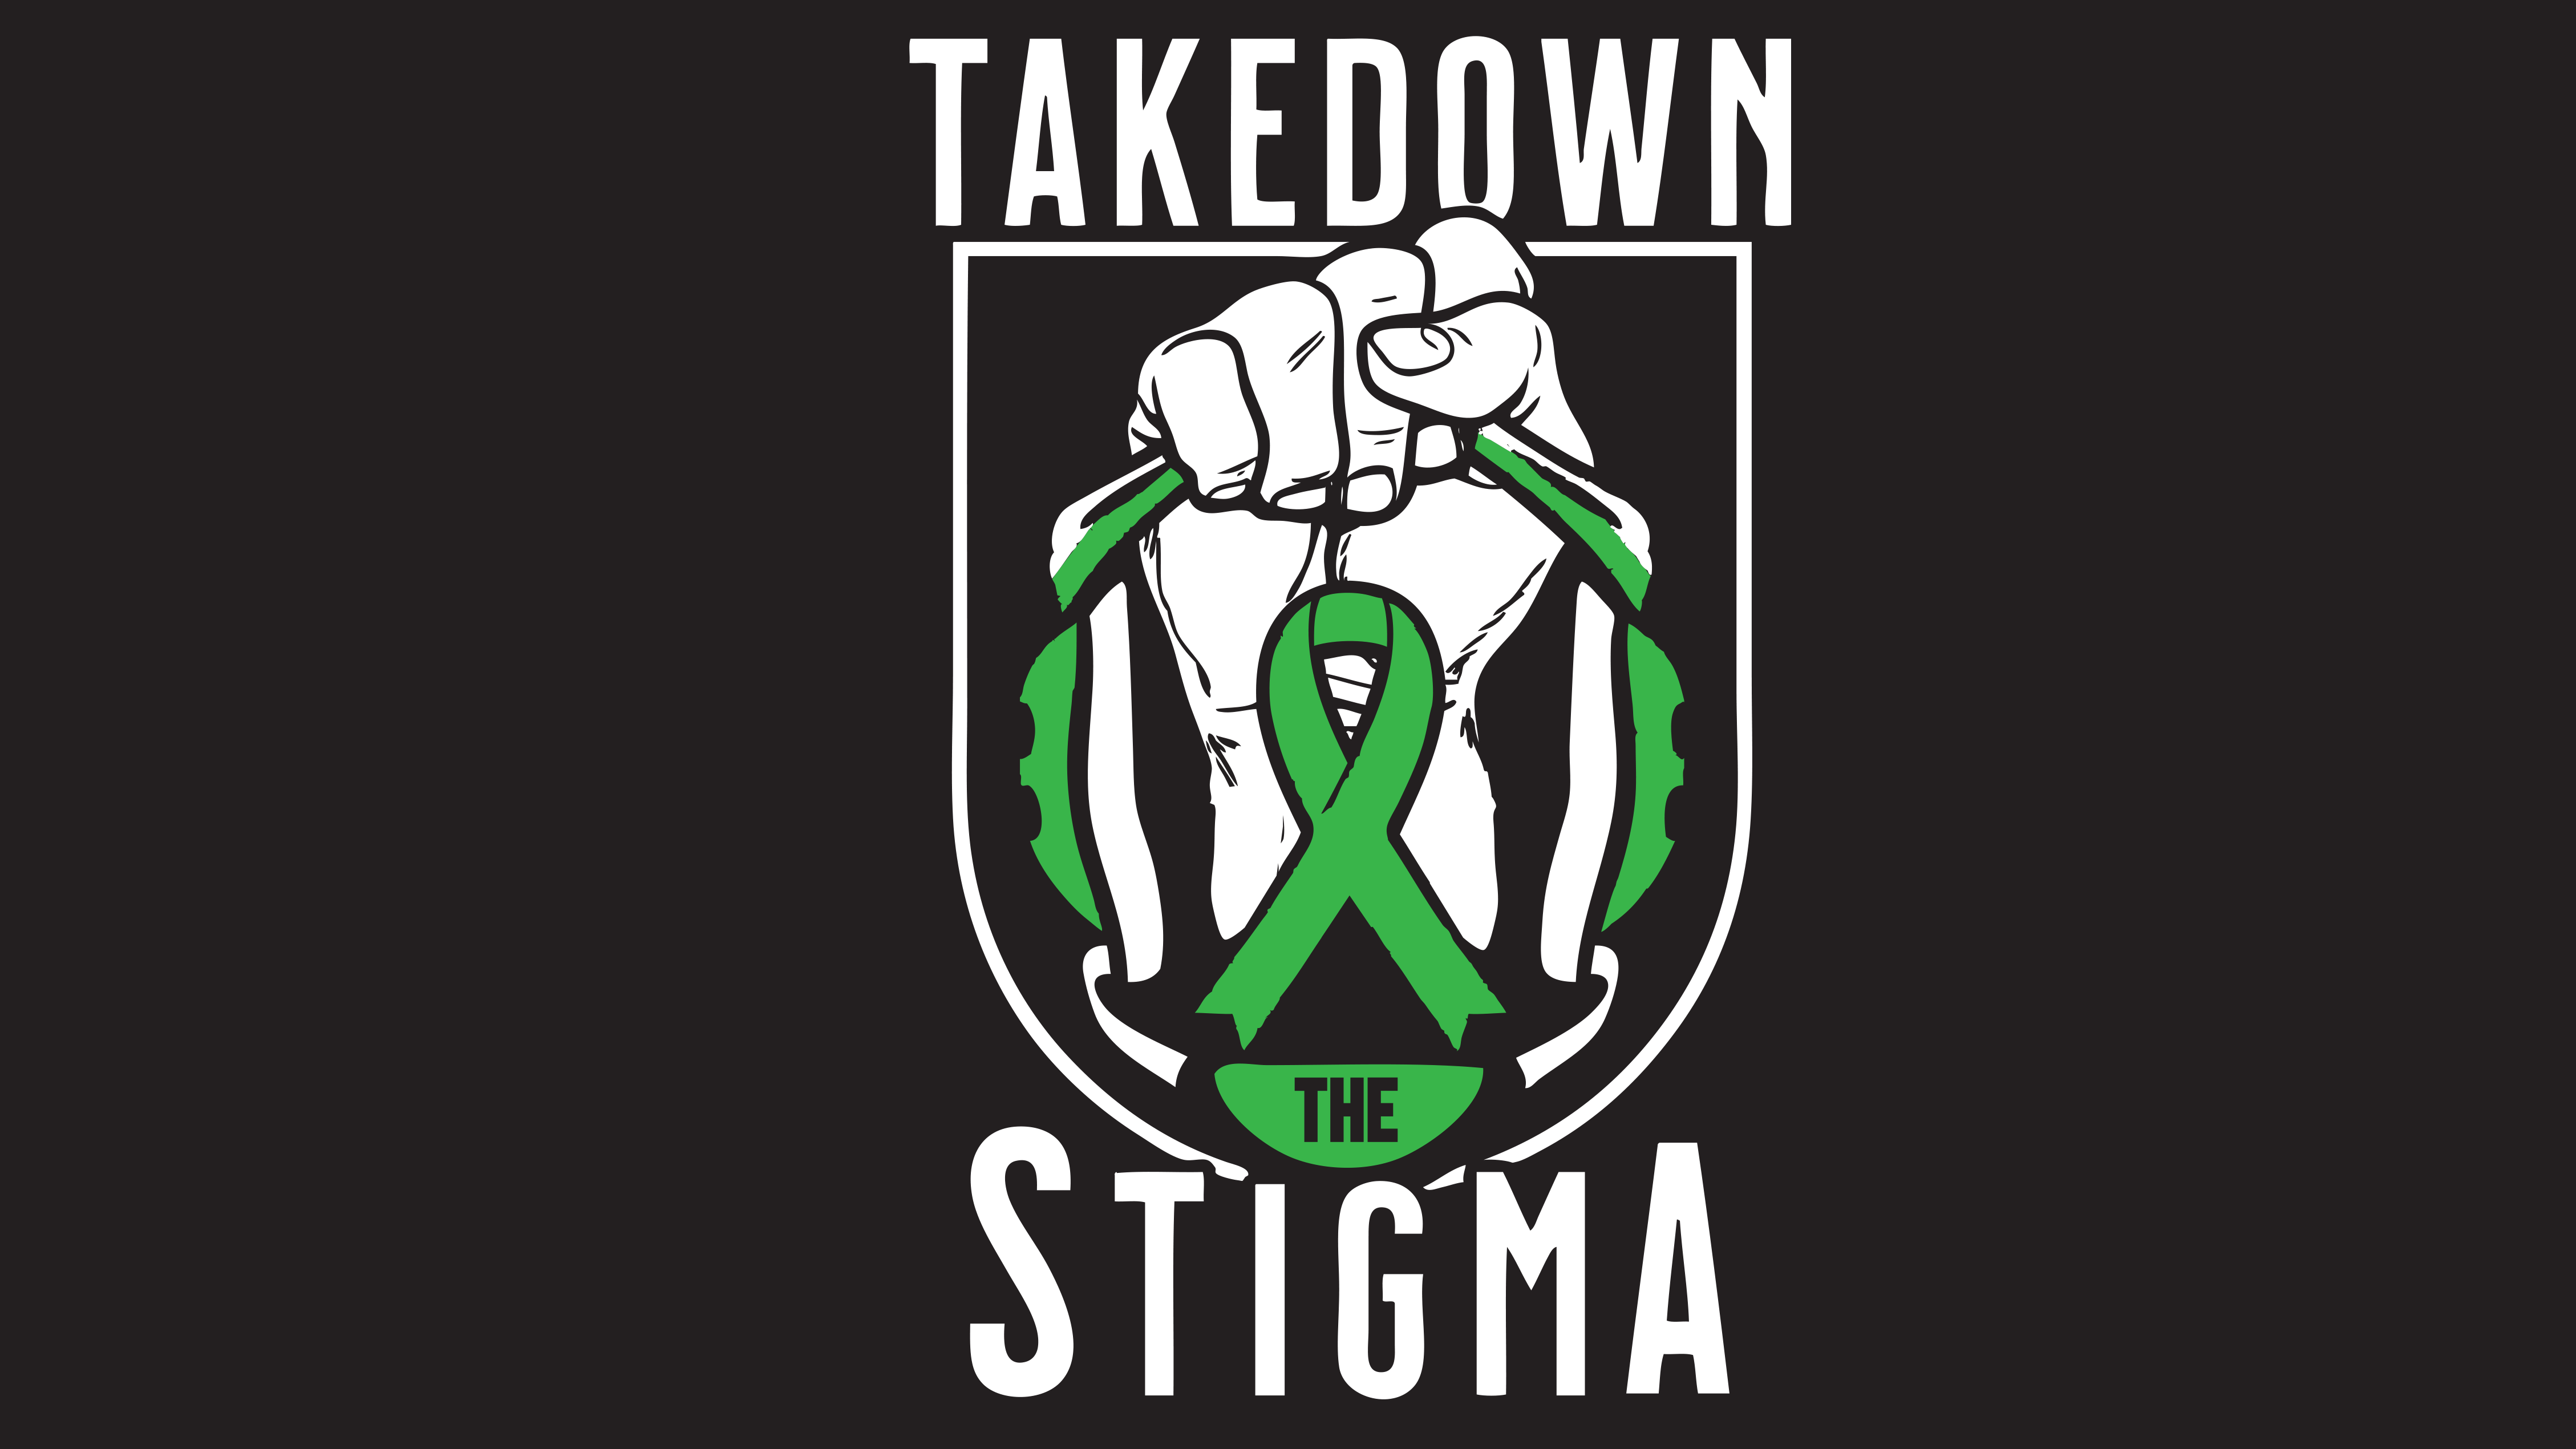 Takedown The Stigma